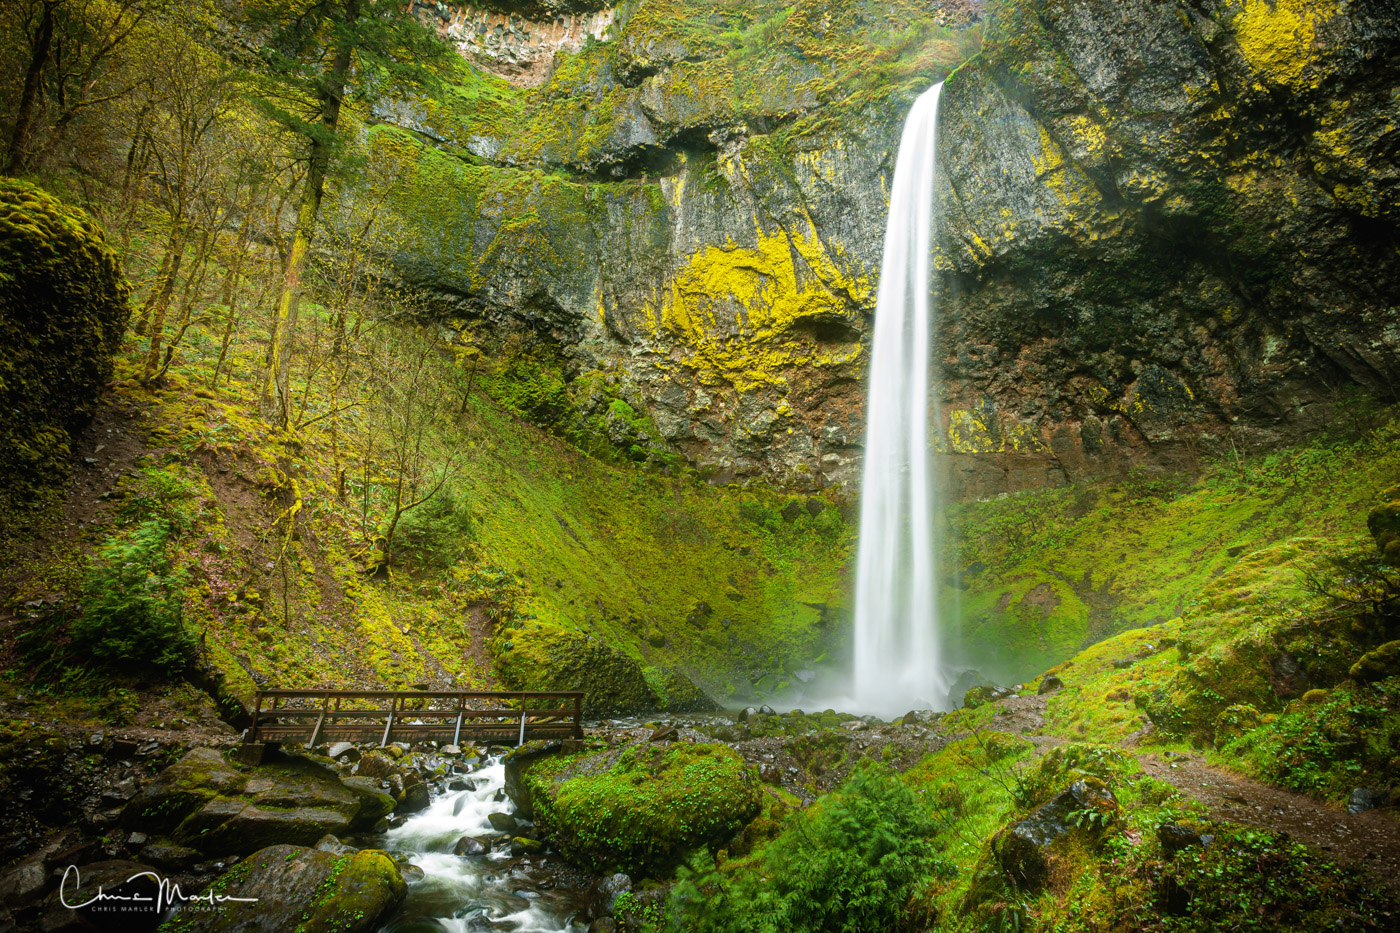 The Columbia River Gorge scenic area outside Portland is a waterfall lovers paradise.   Several dozen waterfalls reside along...